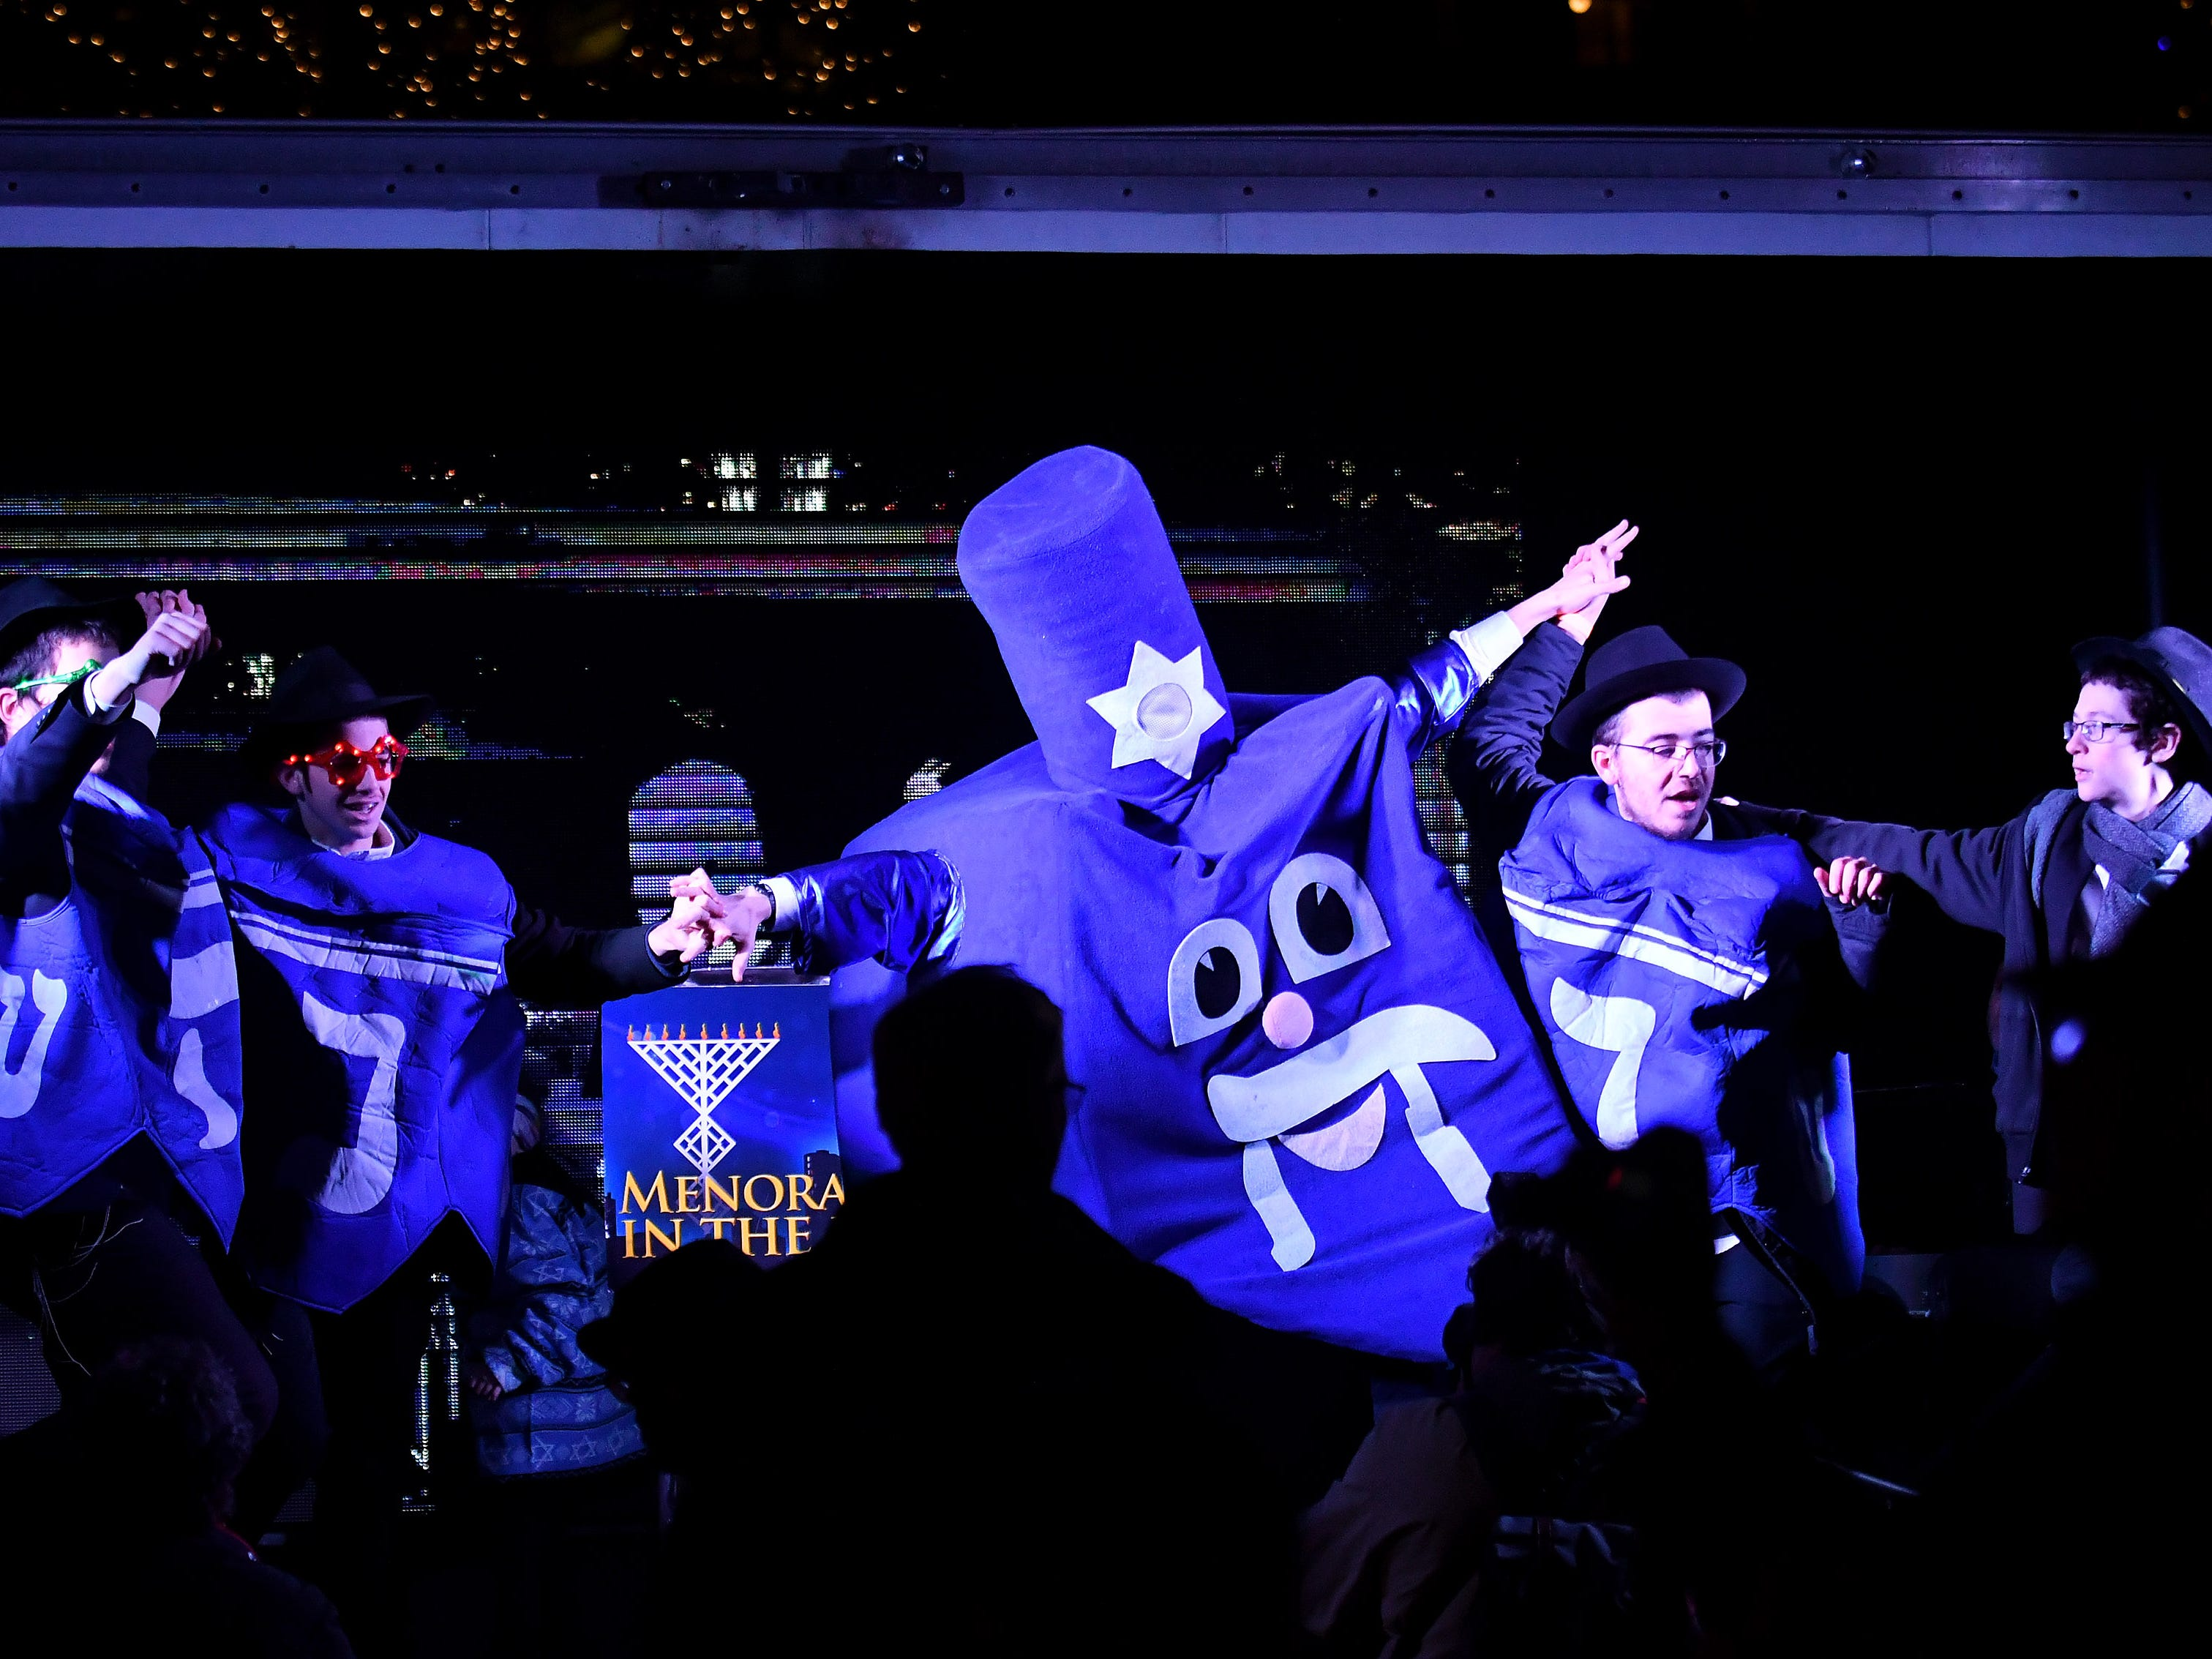 Students from the Chabad Yeshivah school in Oak Park sing and dance at the Menorah in the D celebration at Campus Martius.